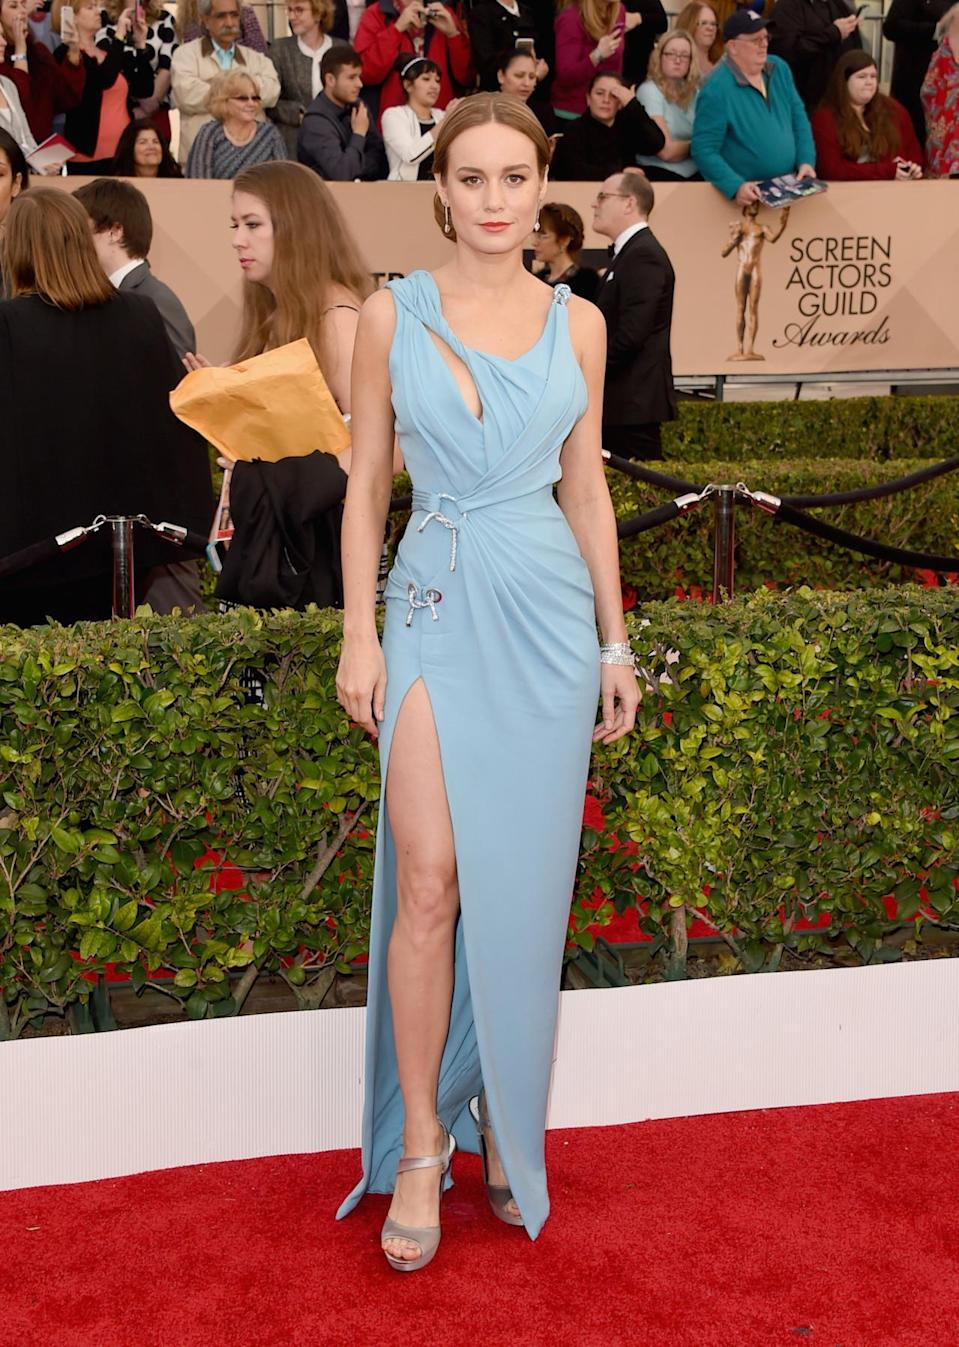 <p>It seems that jet lag leads to really good sartorial decisions! Brie Larson, who recently won a Golden Globe for her performance in <i>Room</i>, revealed that the light blue Versace dress she wore to the SAG Awards was the first dress she tried on after getting off a flight from Australia just days before. The knot , twist, and drape details from the front are cool and an orange strip of fabric from the back offers even ore awesomeness. <i>Photo: Getty Images</i></p>